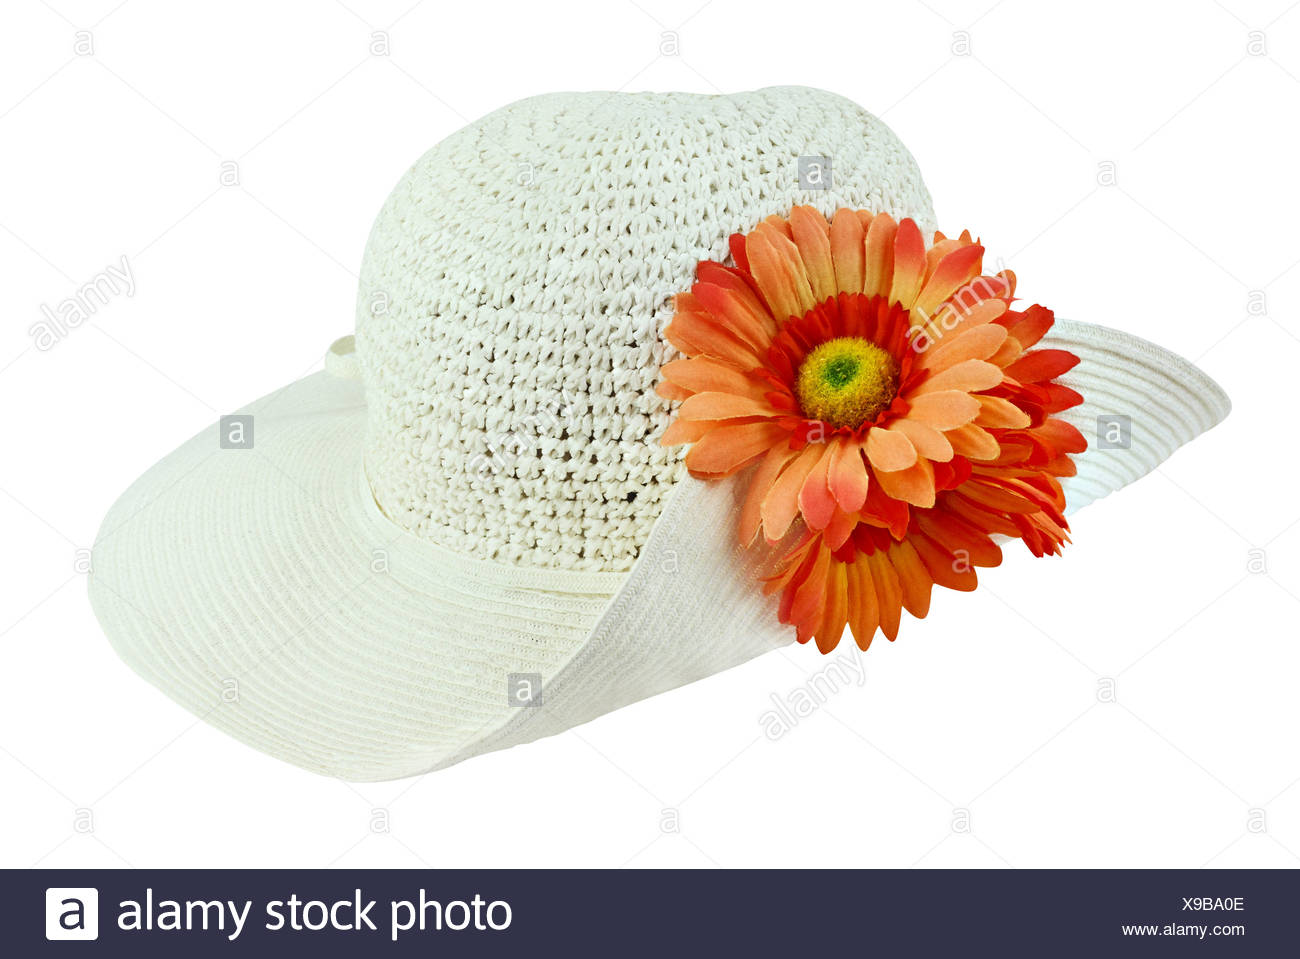 dfbf8bf3 White sunhat with flowers isolated over a white background with clipping  path included.